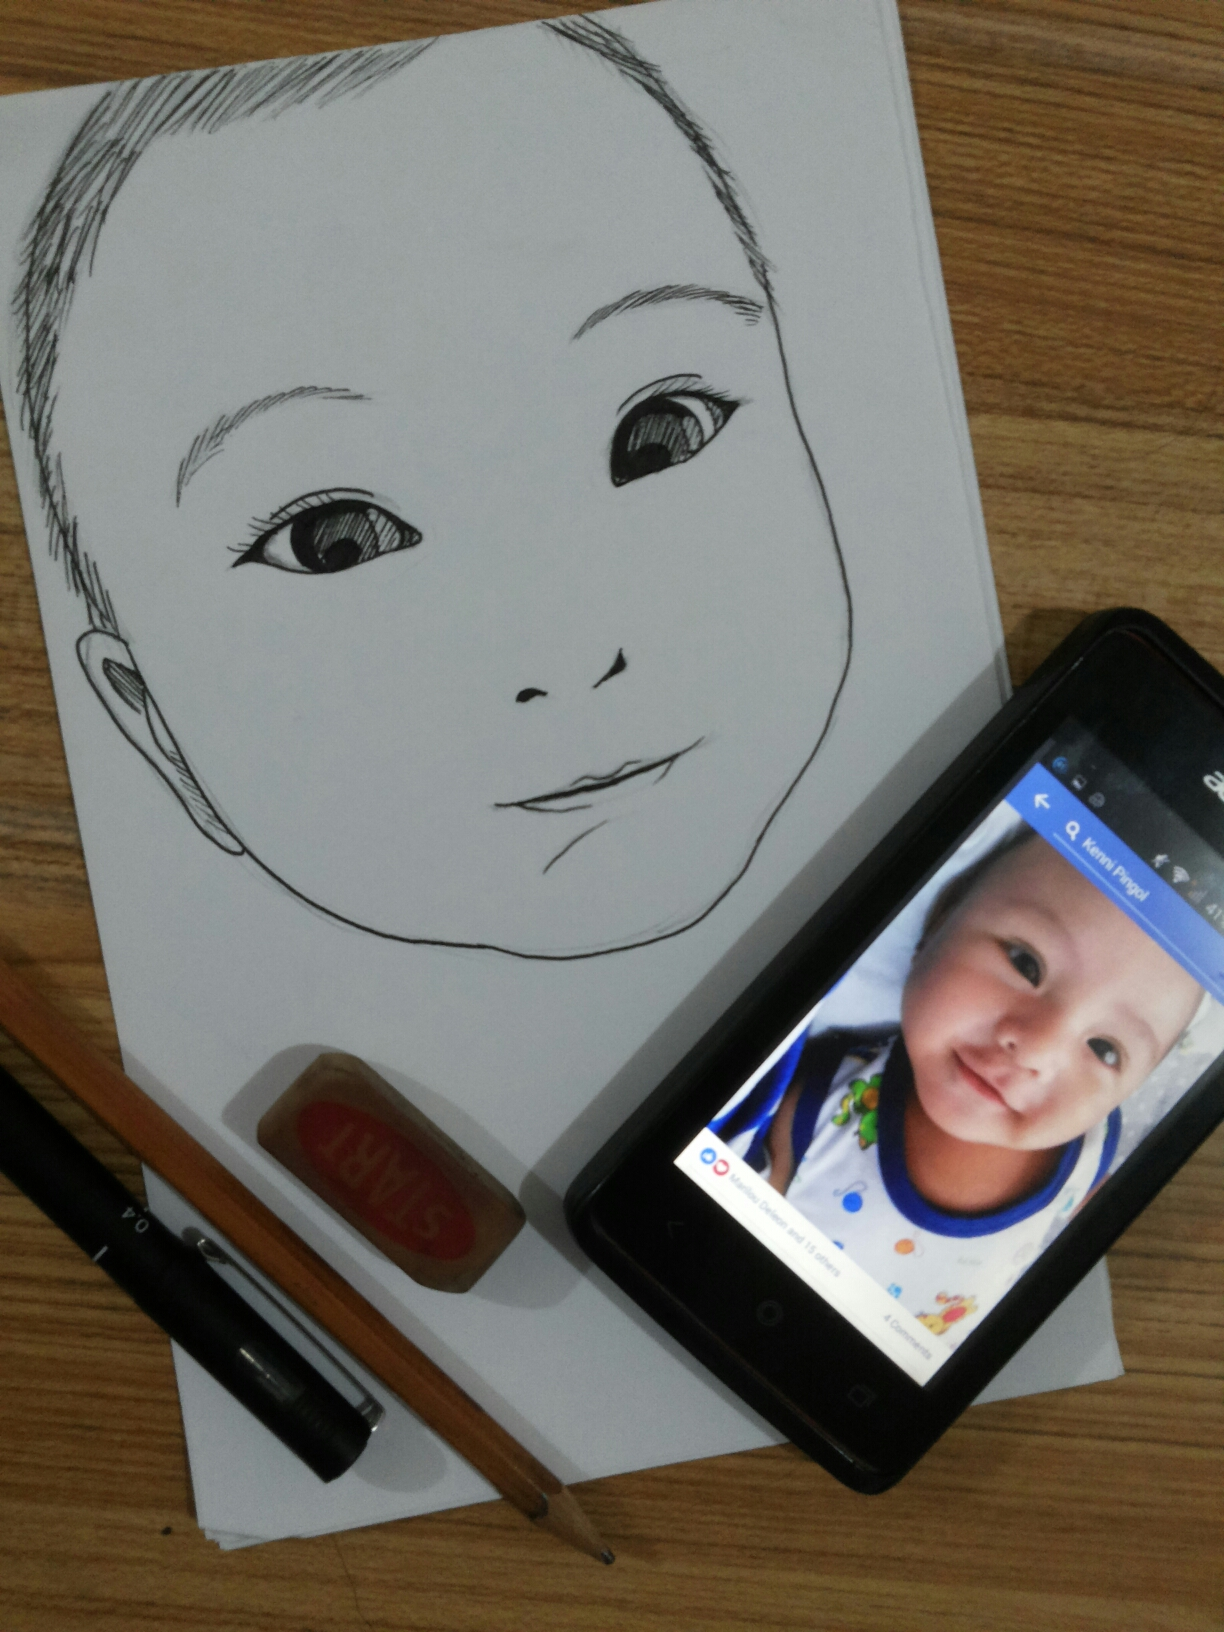 draw 3 family faces for children's coloring books